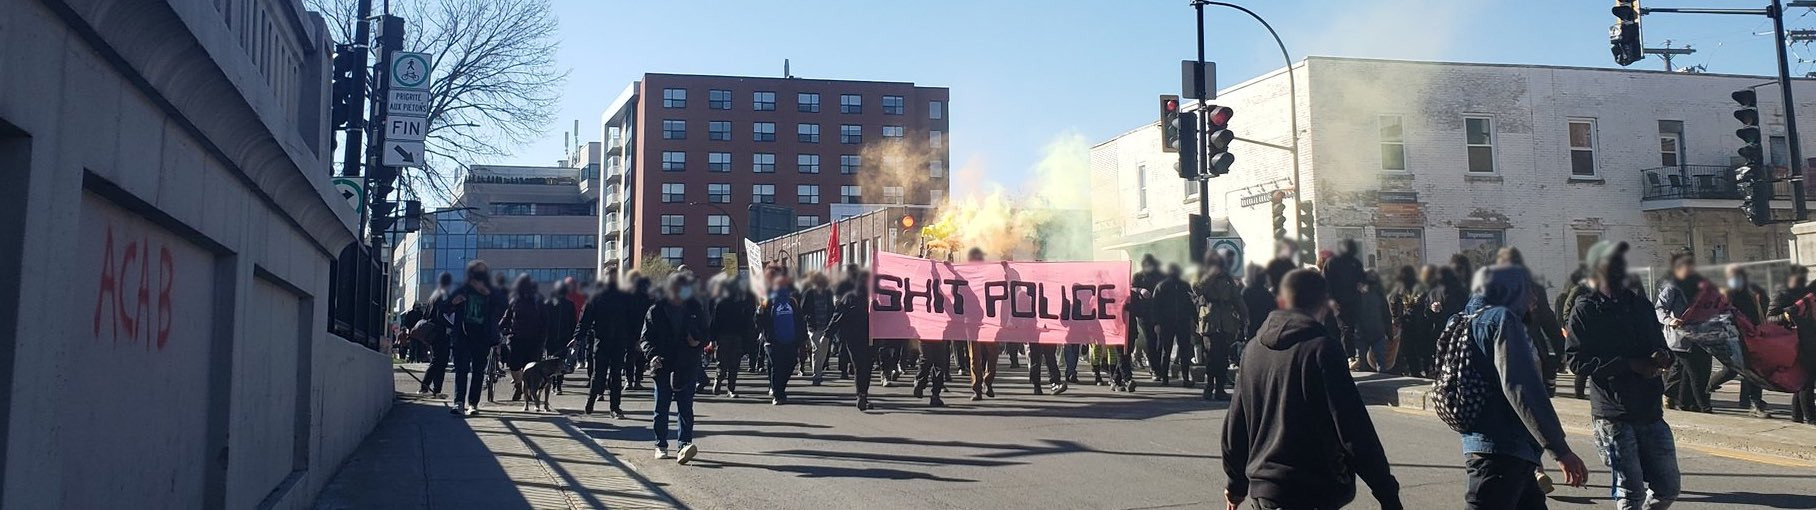 Leaving the SPVM Behind to Attack a High-Tech Hub: A Promising Anti-Capitalist May Day